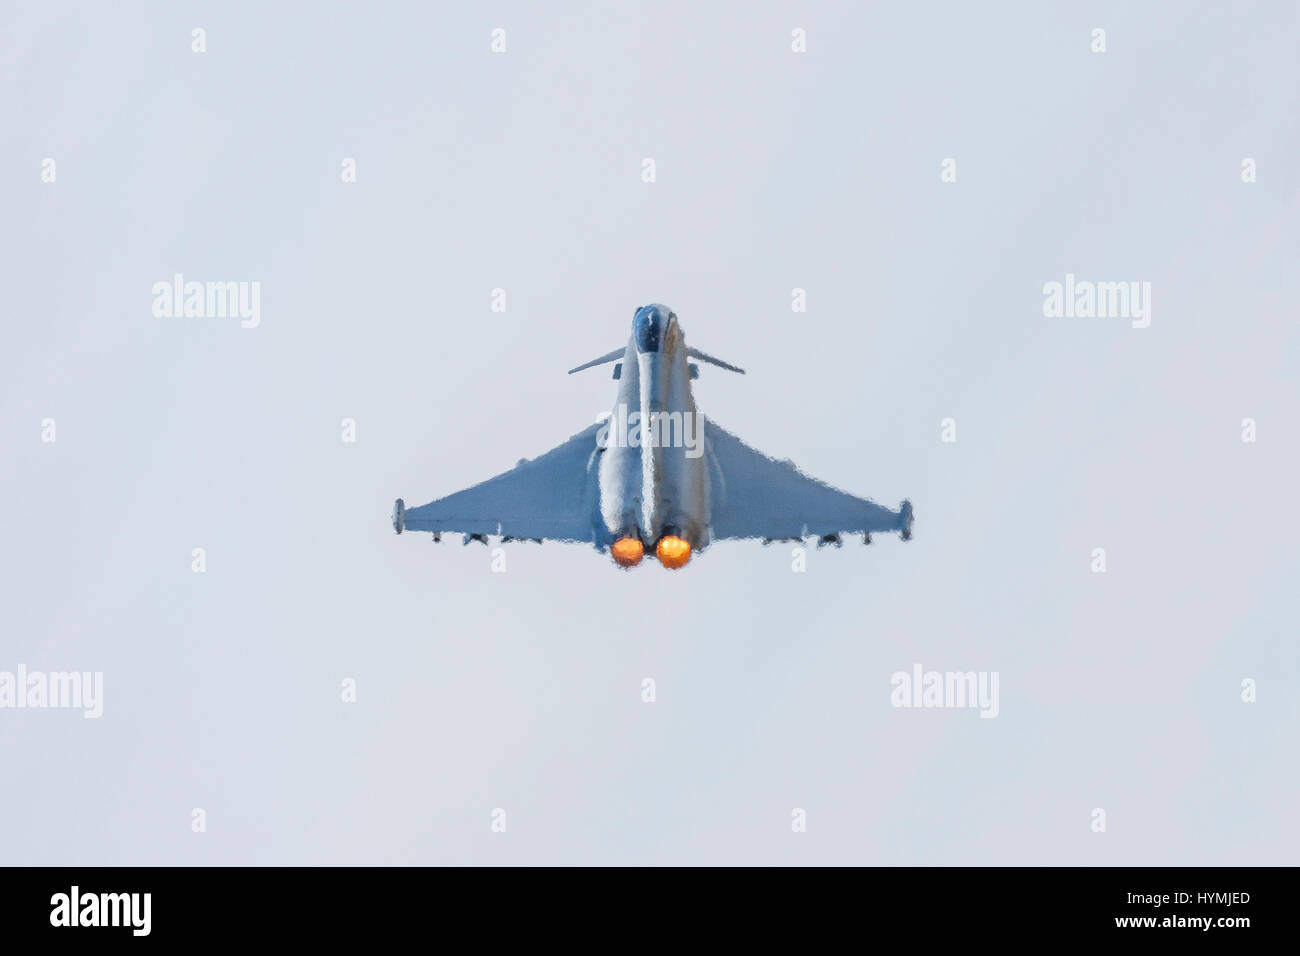 Eurofighter Typhoon jet fighter aircraft take off with afterburners, full reheat and heat haze Stock Photo